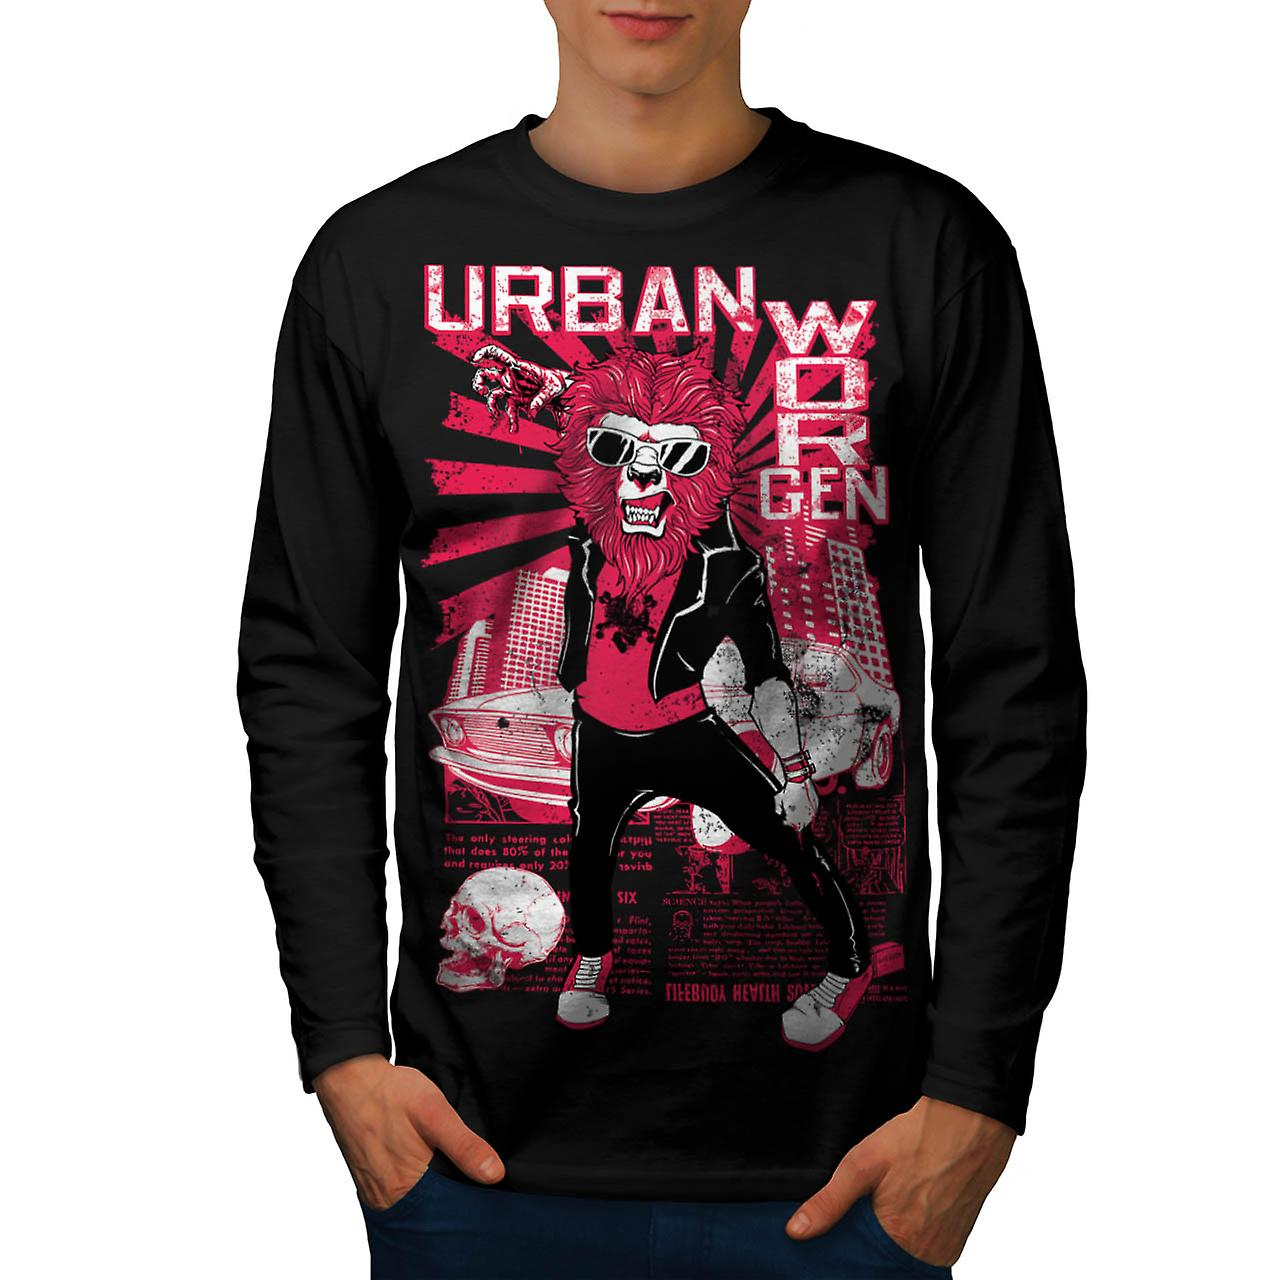 Urban Jungle lejon klo City Life män Svart långärmad T-shirt | Wellcoda